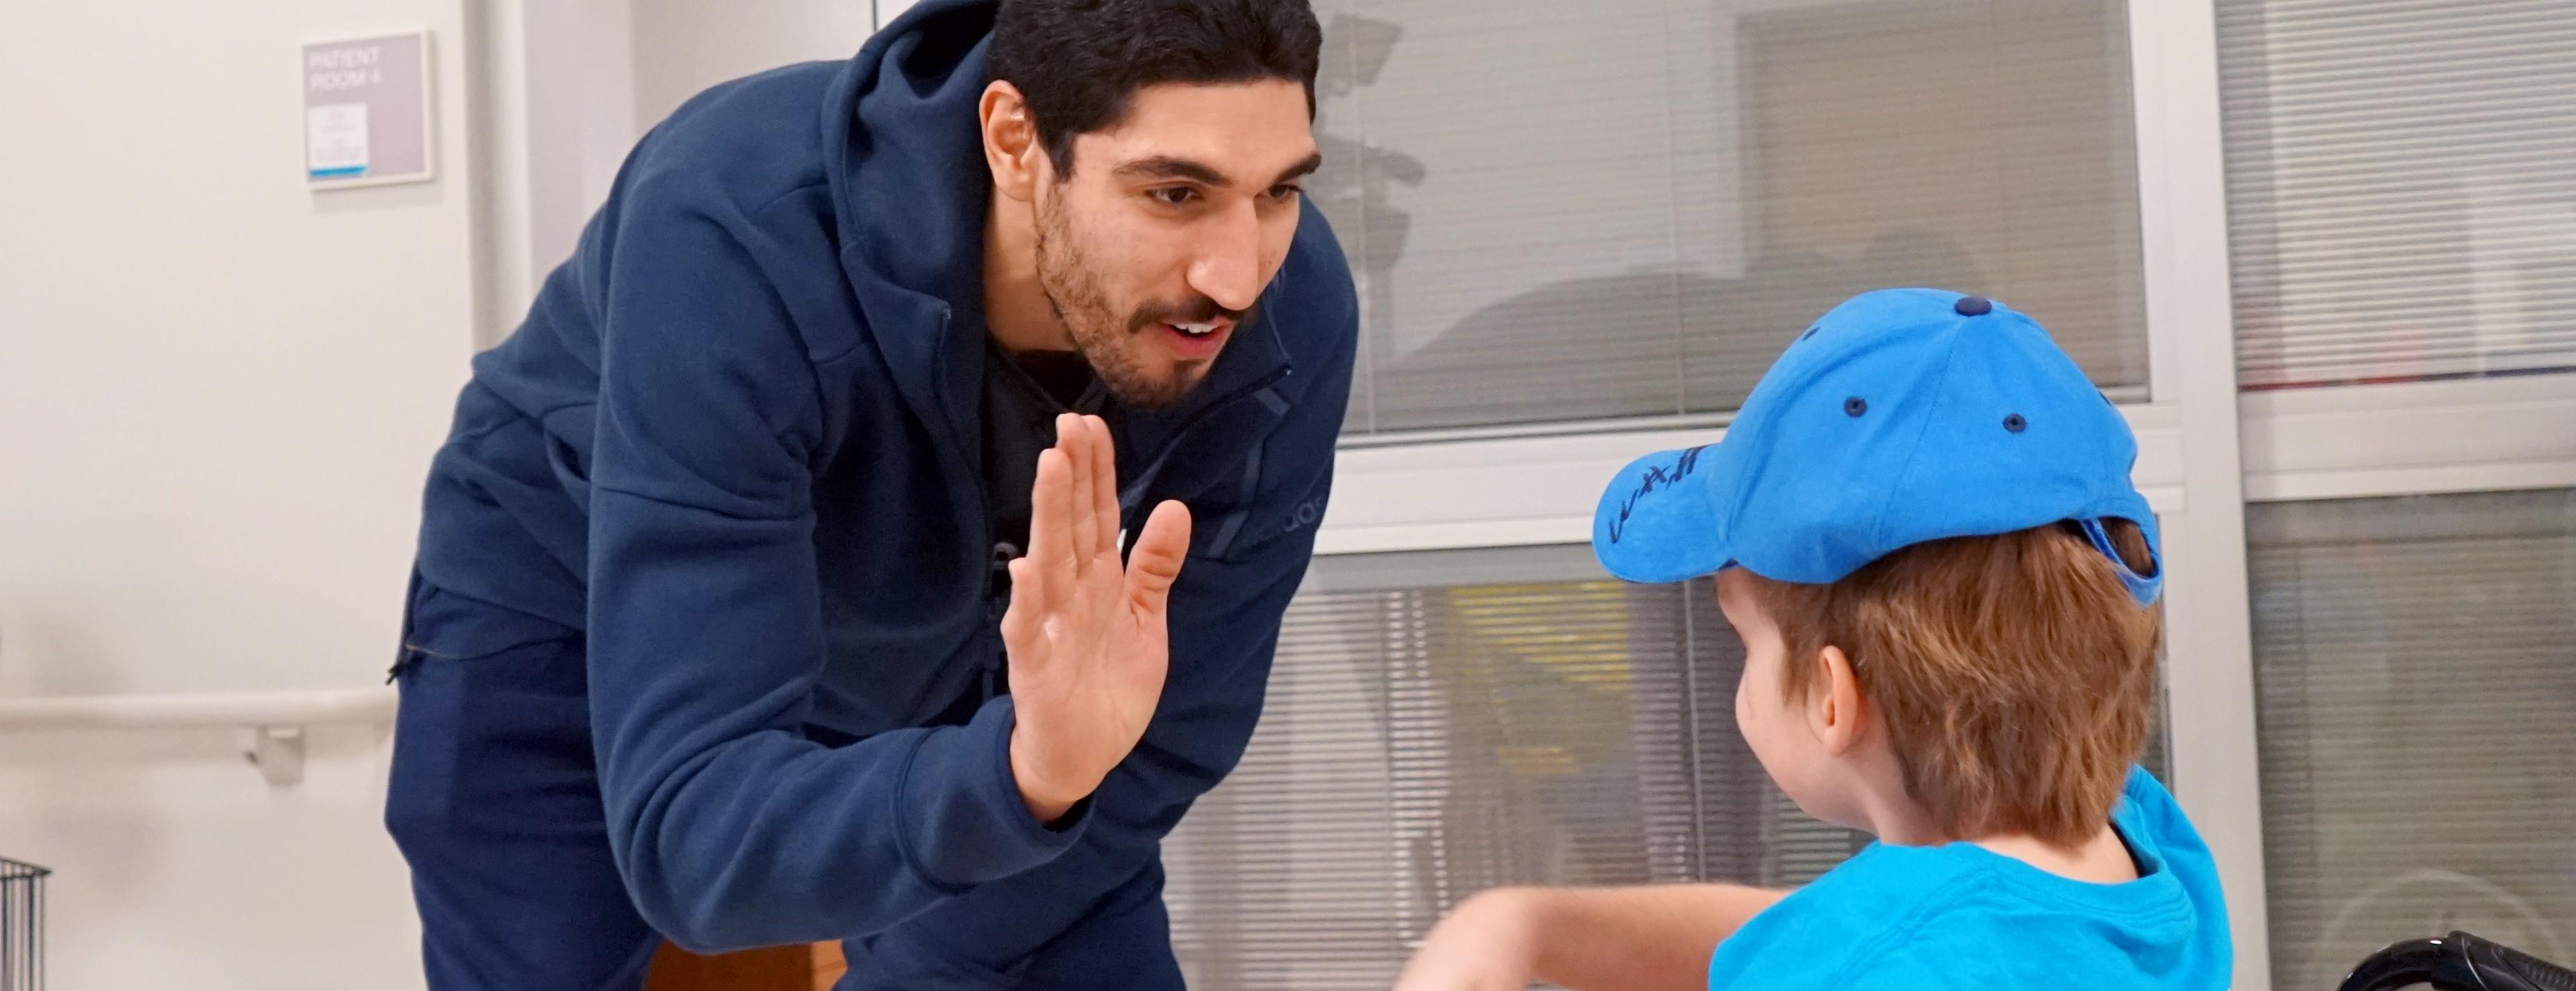 Enes Kanter Surprises Patient For His 16th Birthday